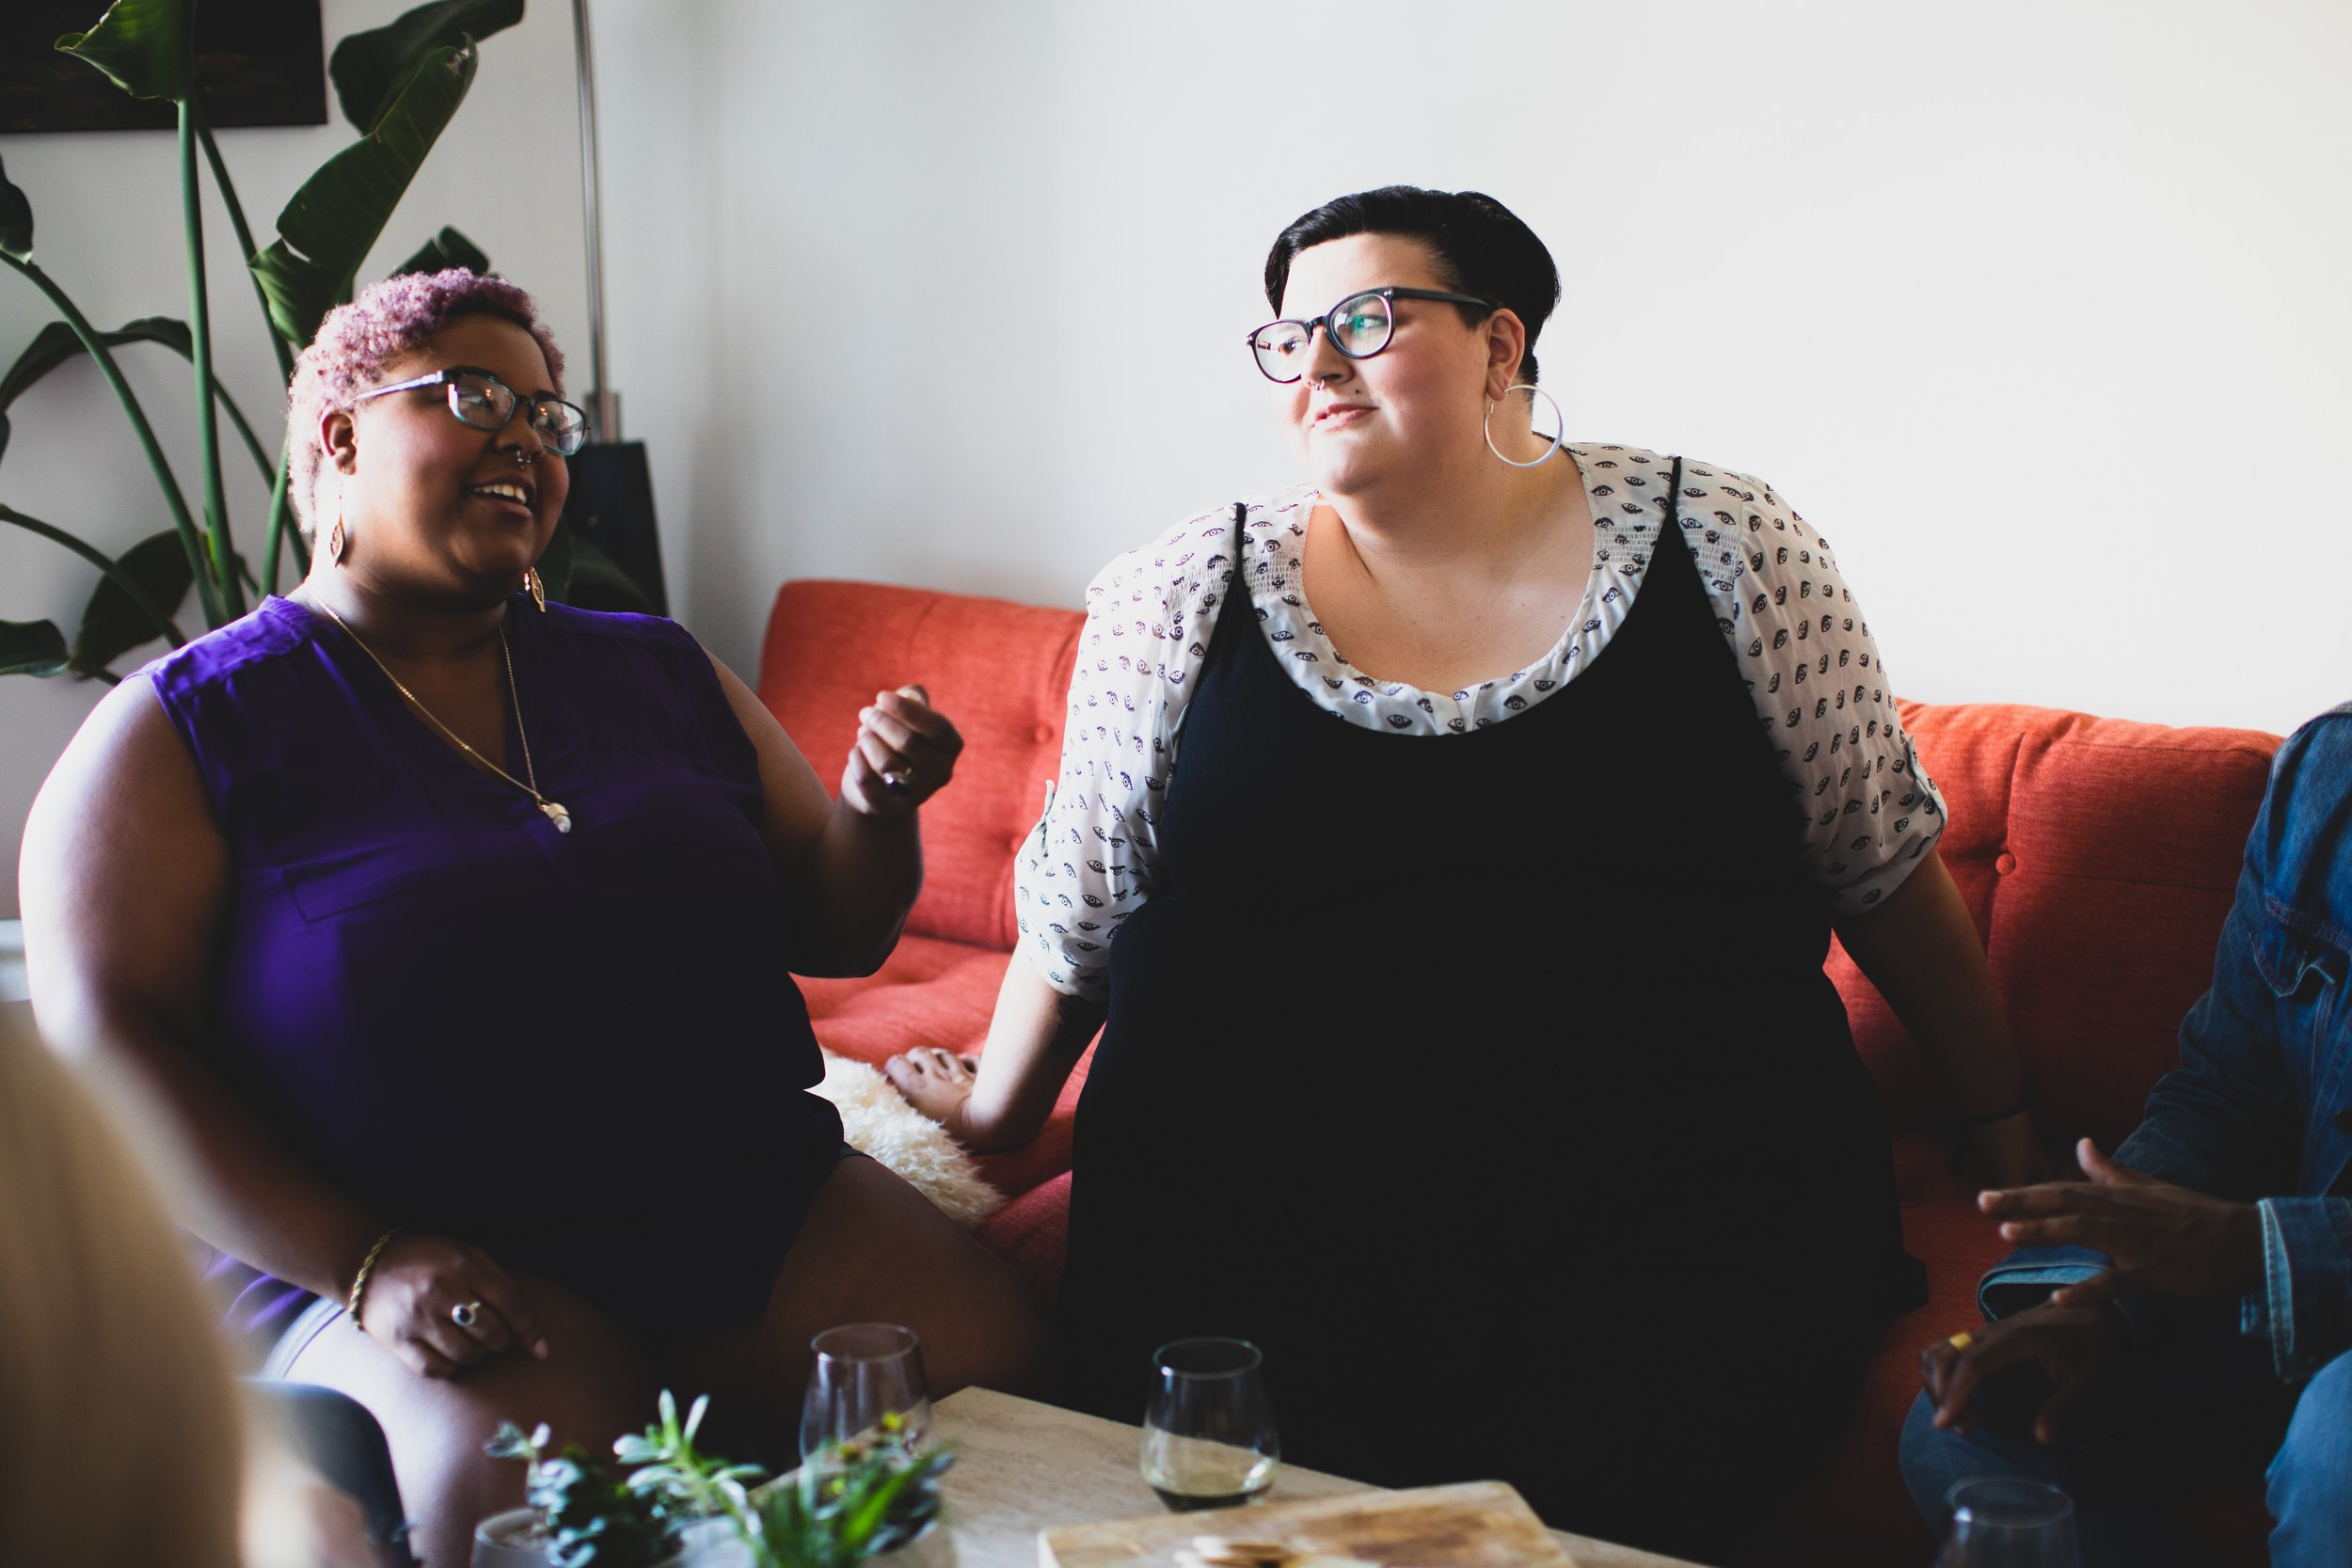 Photo featuring plus-size models by Michael Poley of    Poley Creative    for   AllGo  , publisher of free stock photos featuring plus-size people.